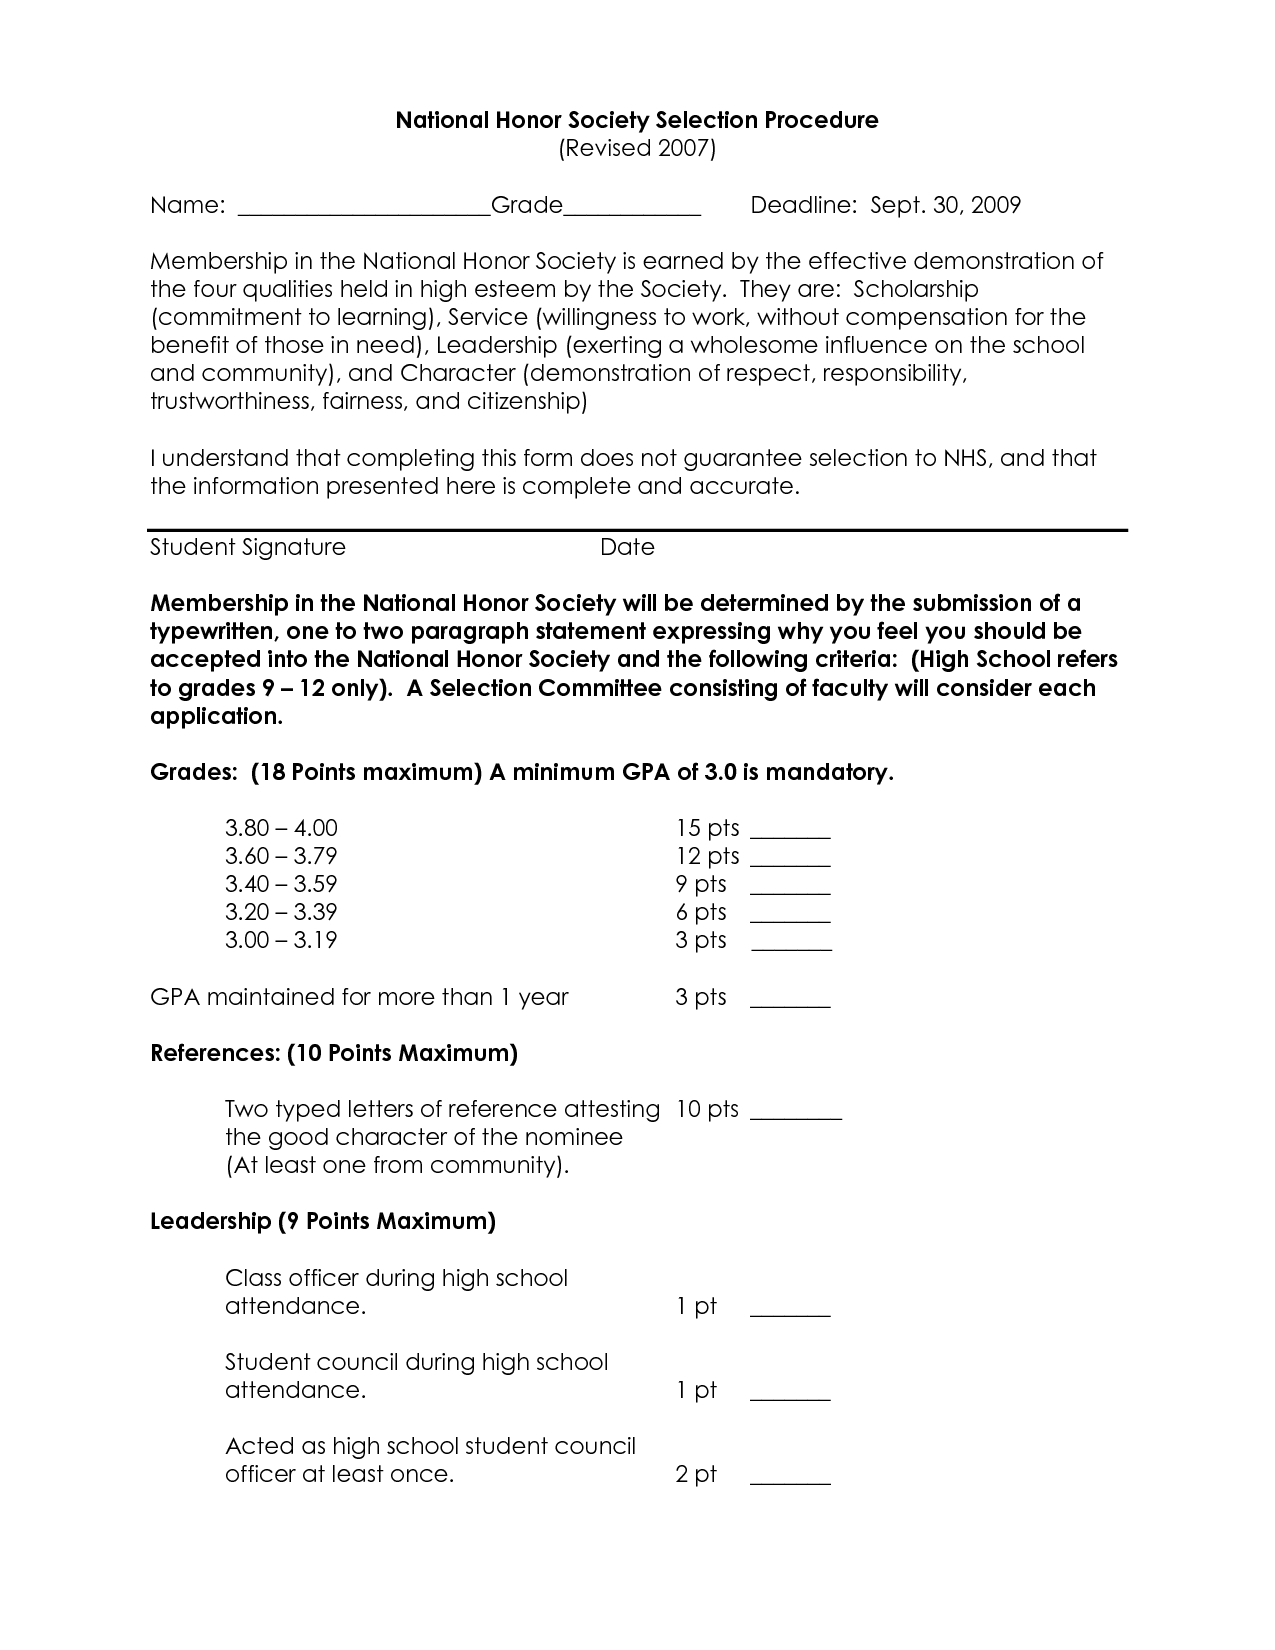 national junior honor society letter of recommendation template example-nhs letter of re mendation template 6-j